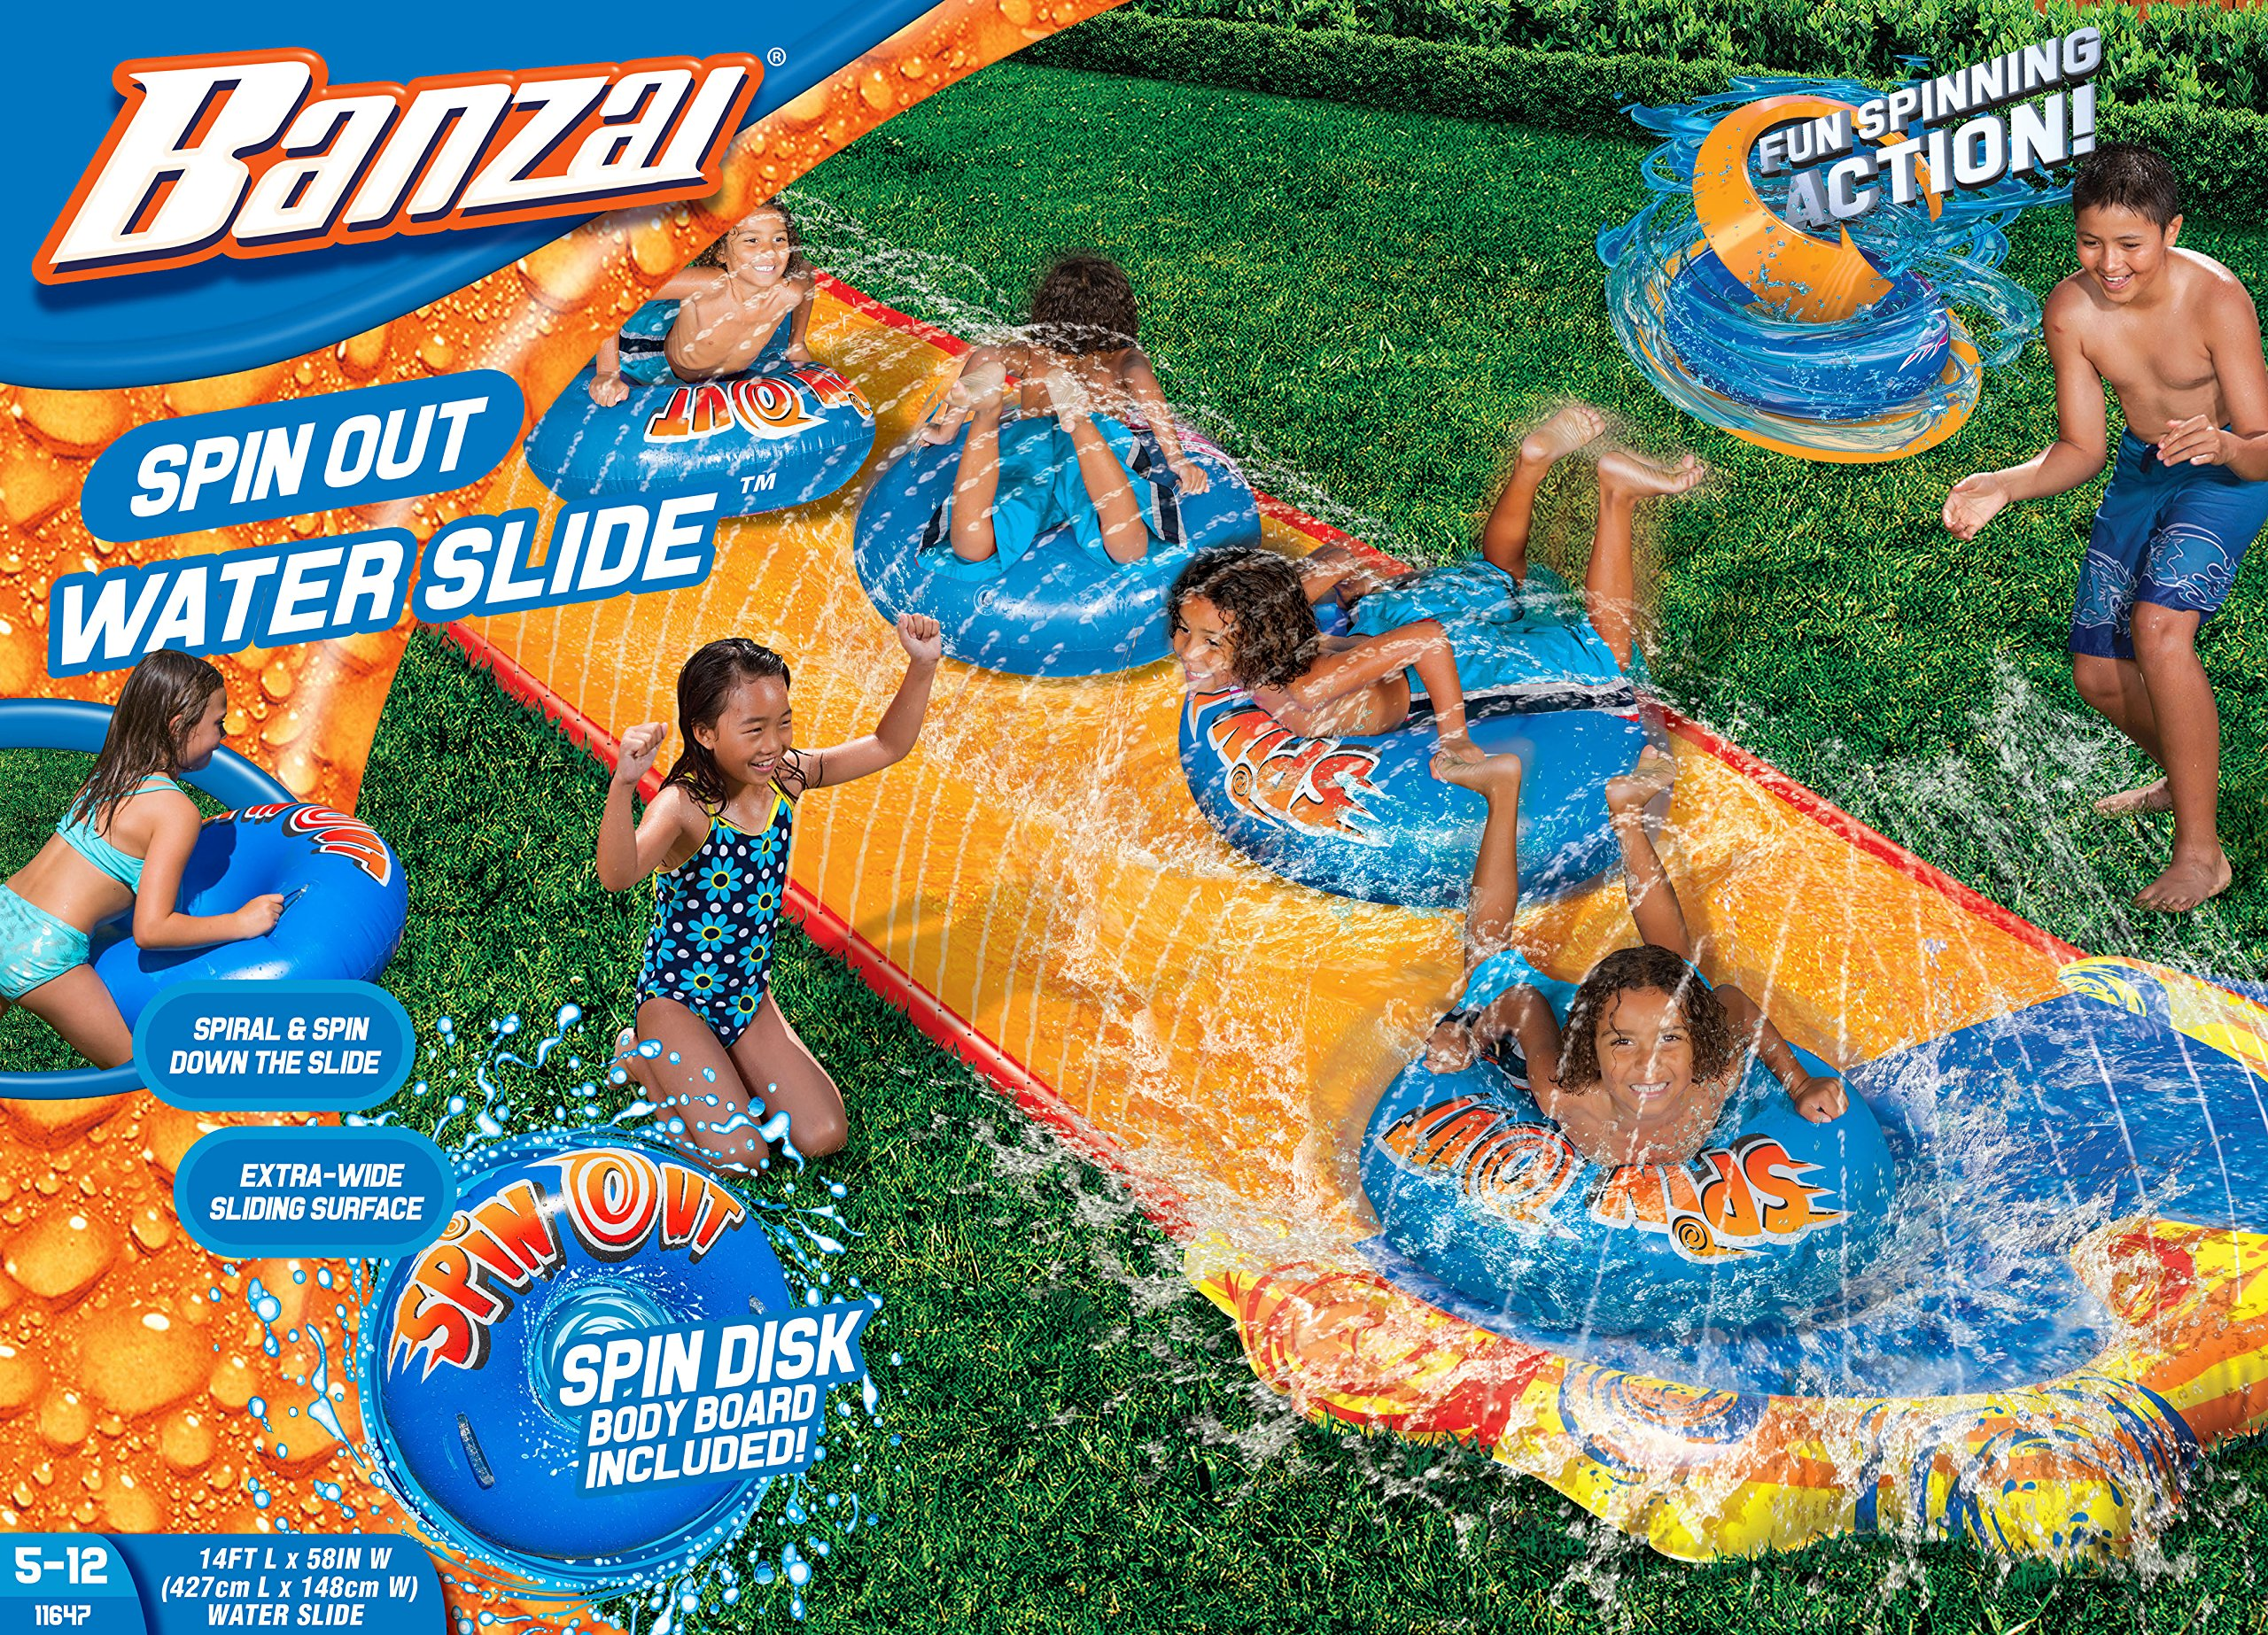 BANZAI Spin Out Slide with Spin Disk Bodyboard by BANZAI (Image #1)